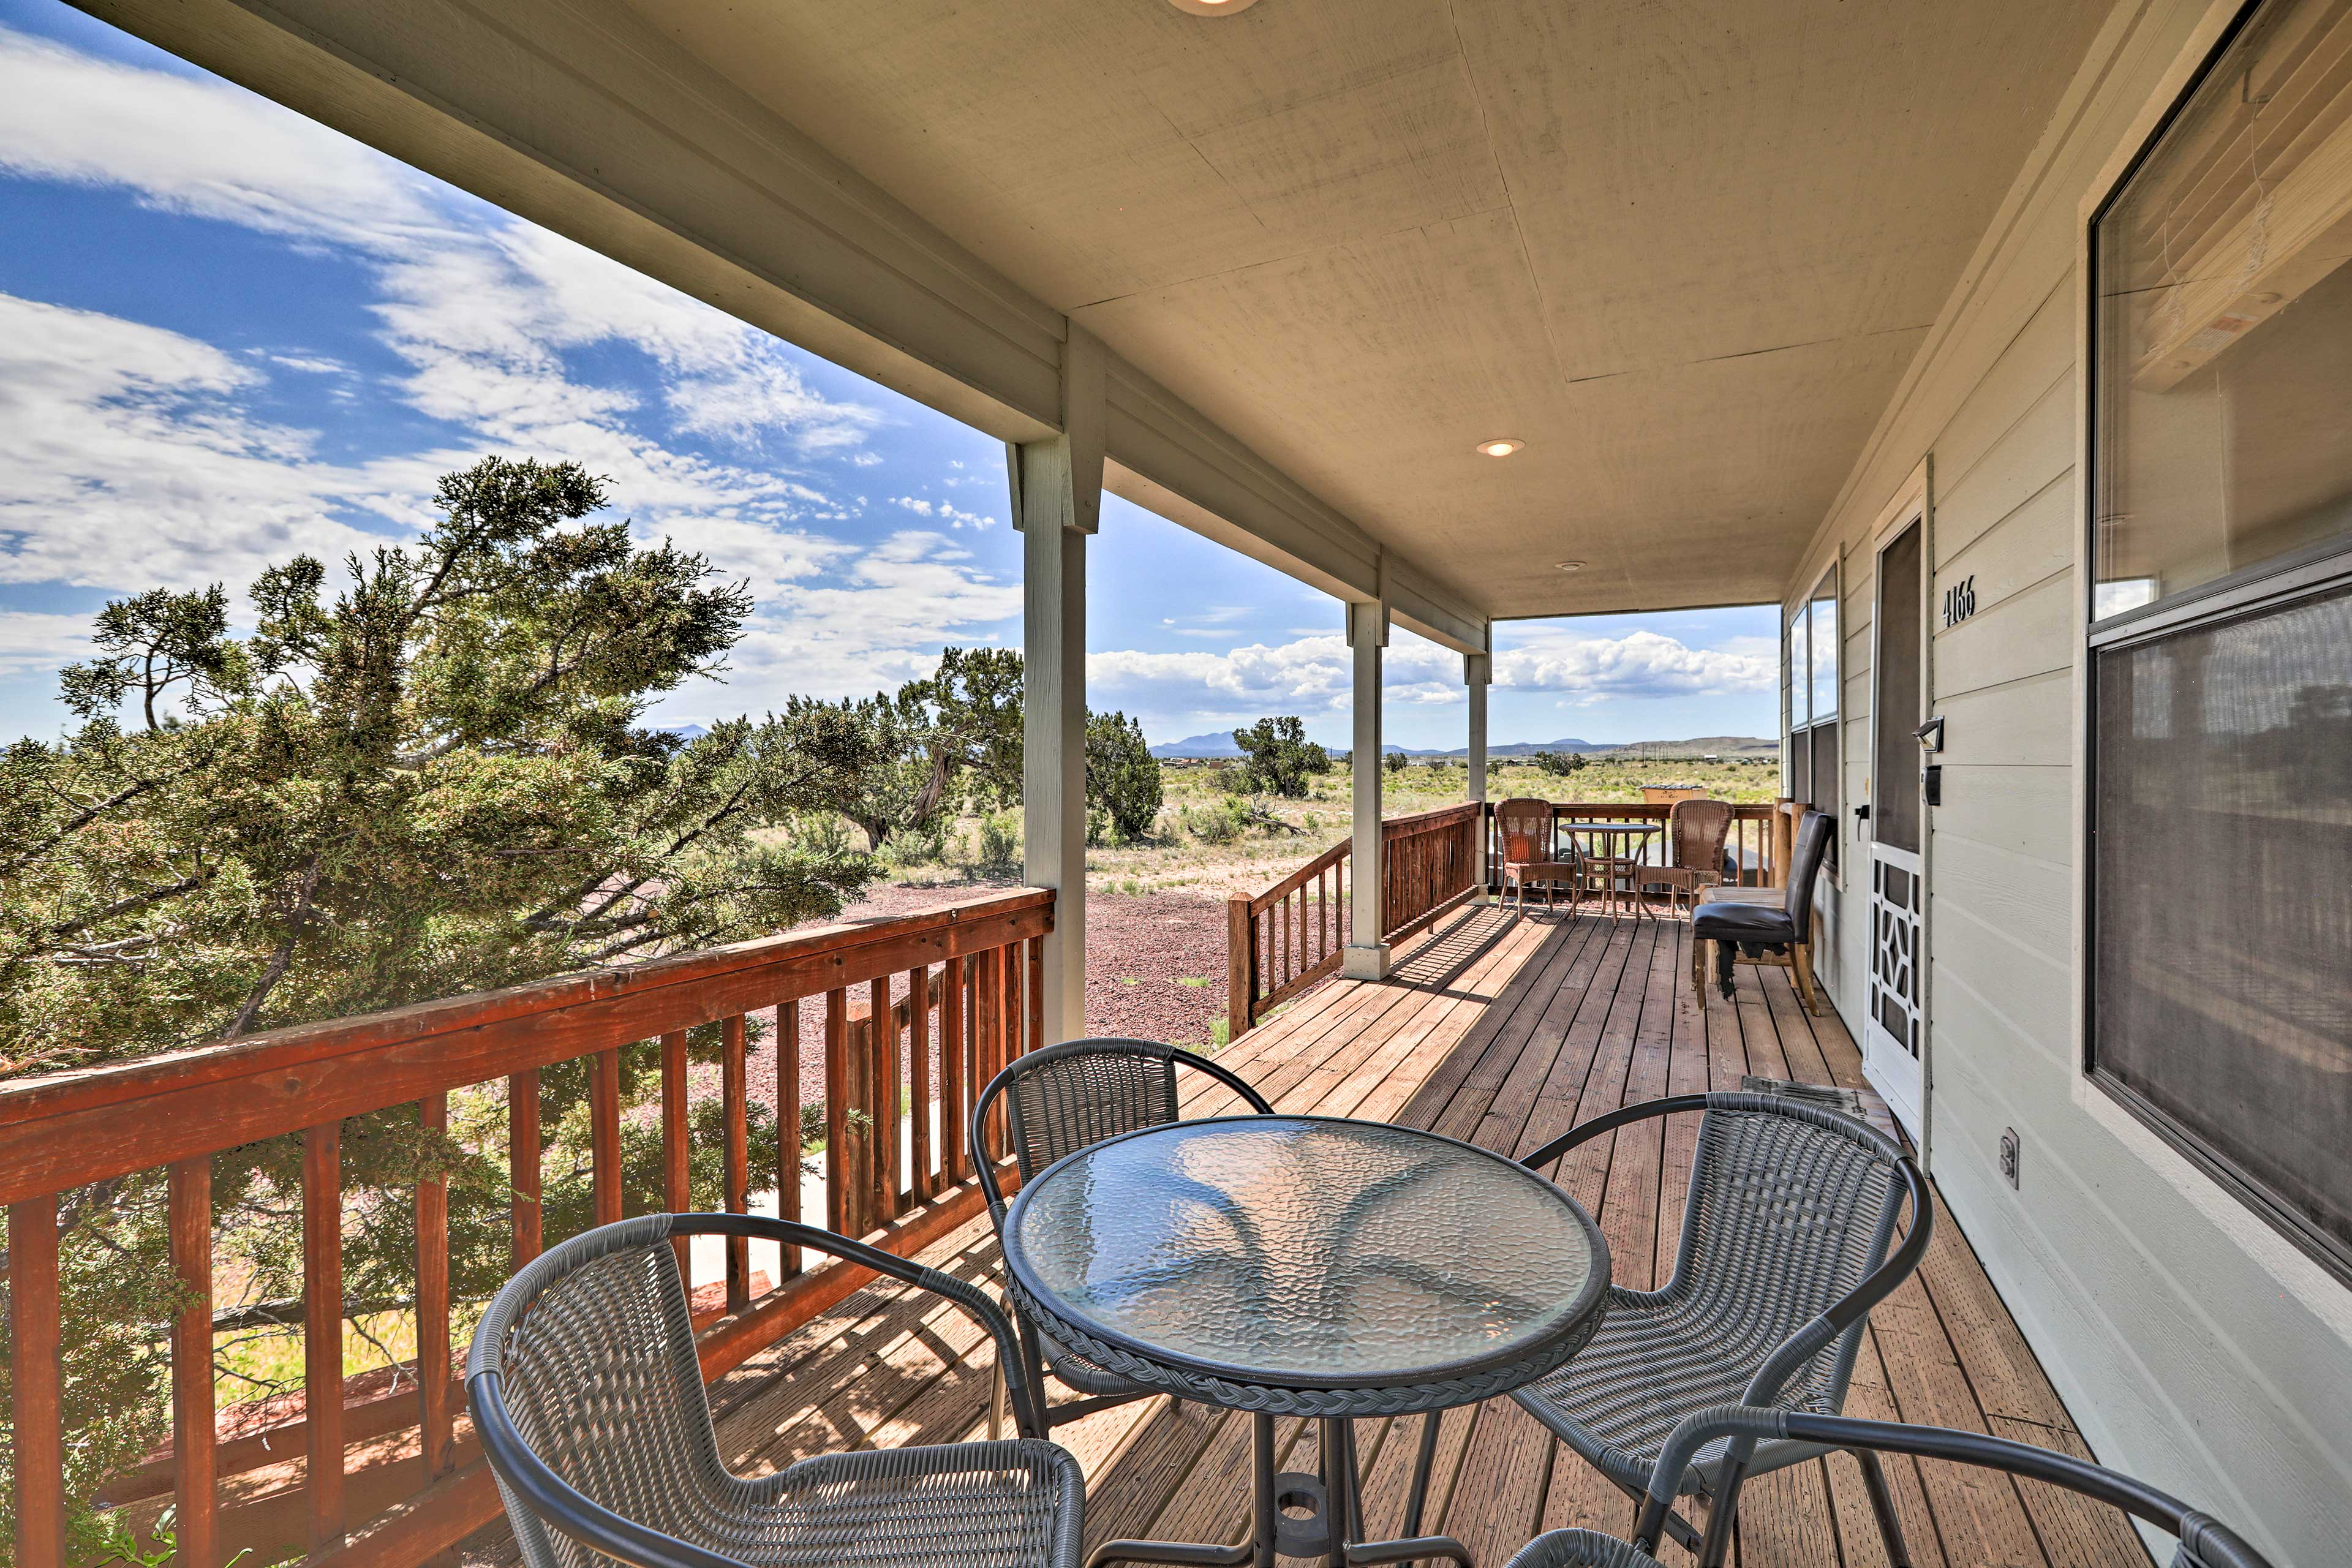 Williams Vacation Rental | 3BR | 2BA | 2 Stories | 1,340 Sq Ft